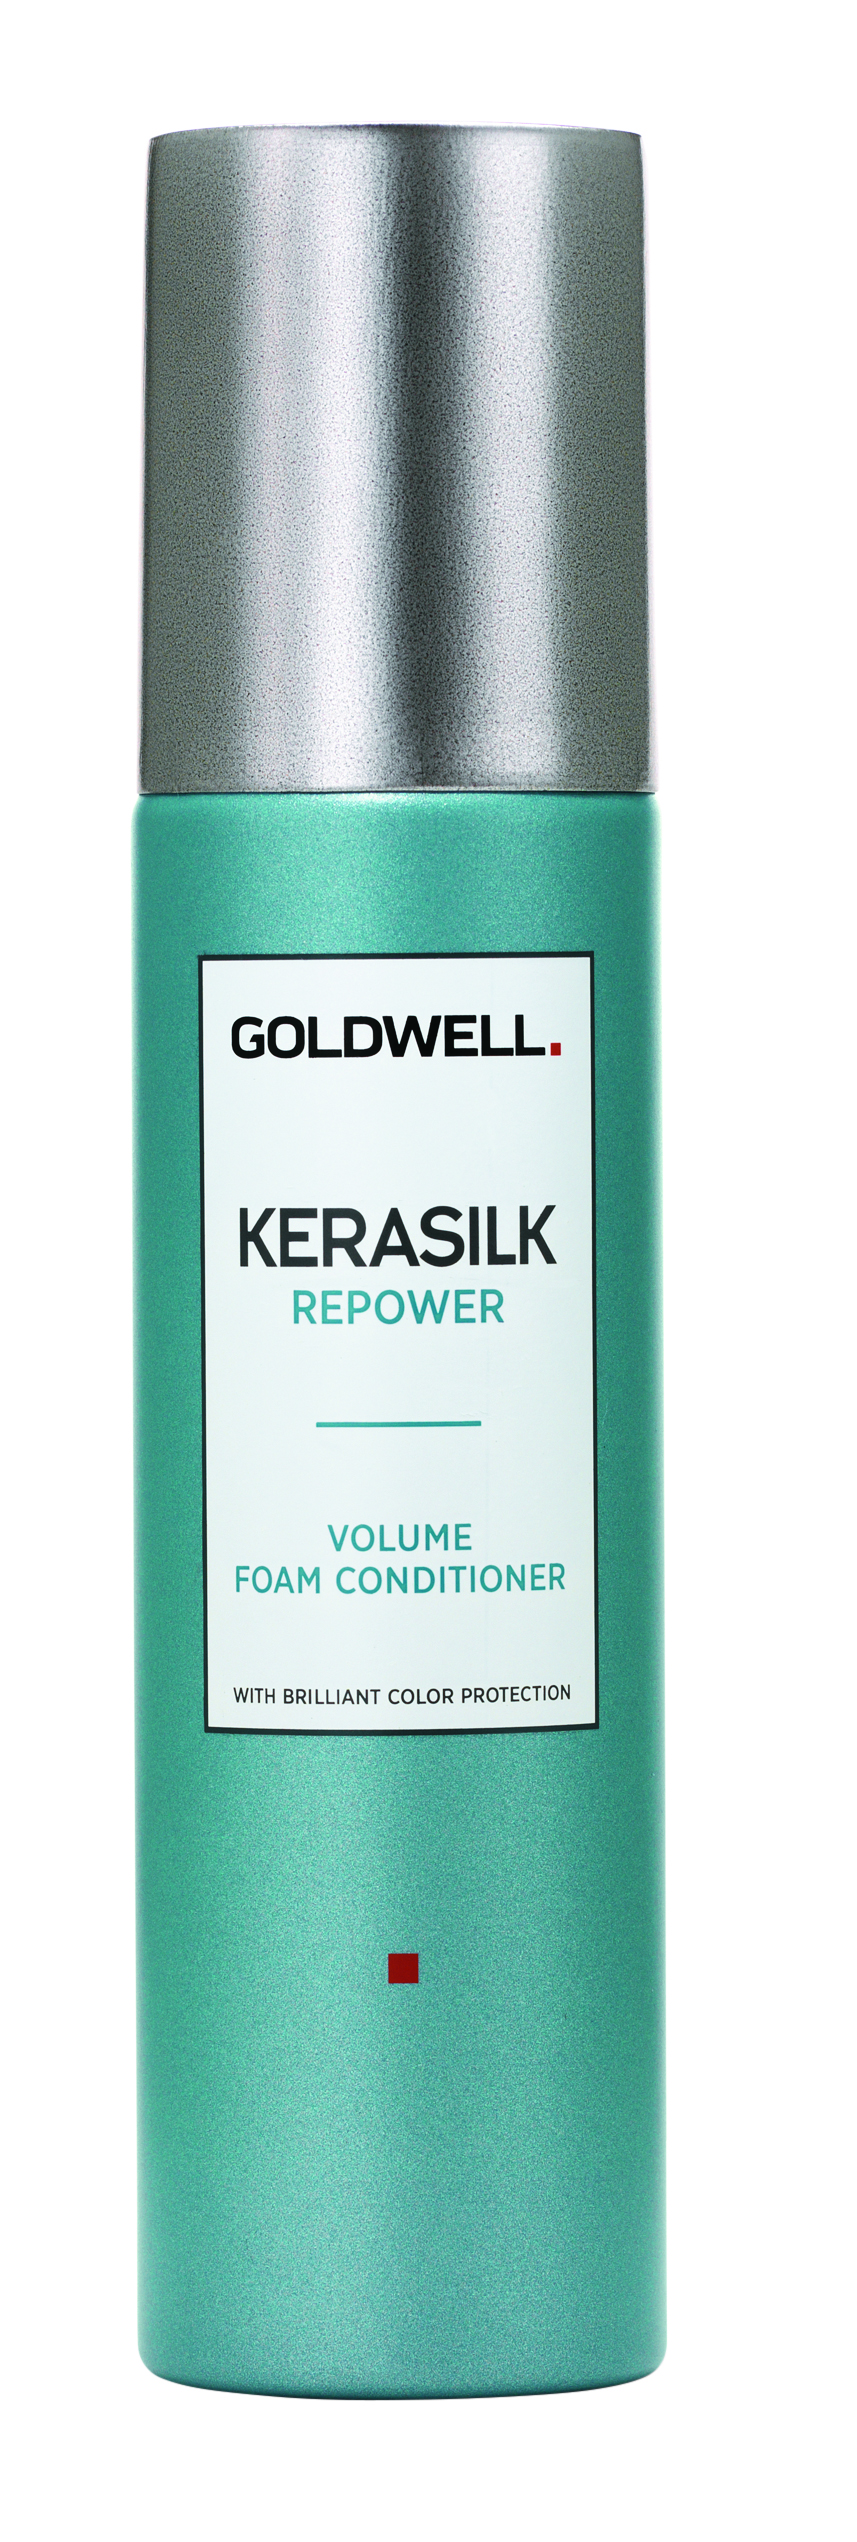 Goldwell  Kerasilk Repower Volume Foam Conditioner is a lightweight aerosol mousse that conditioners without adding weight, enhancing resilience and elasticity.